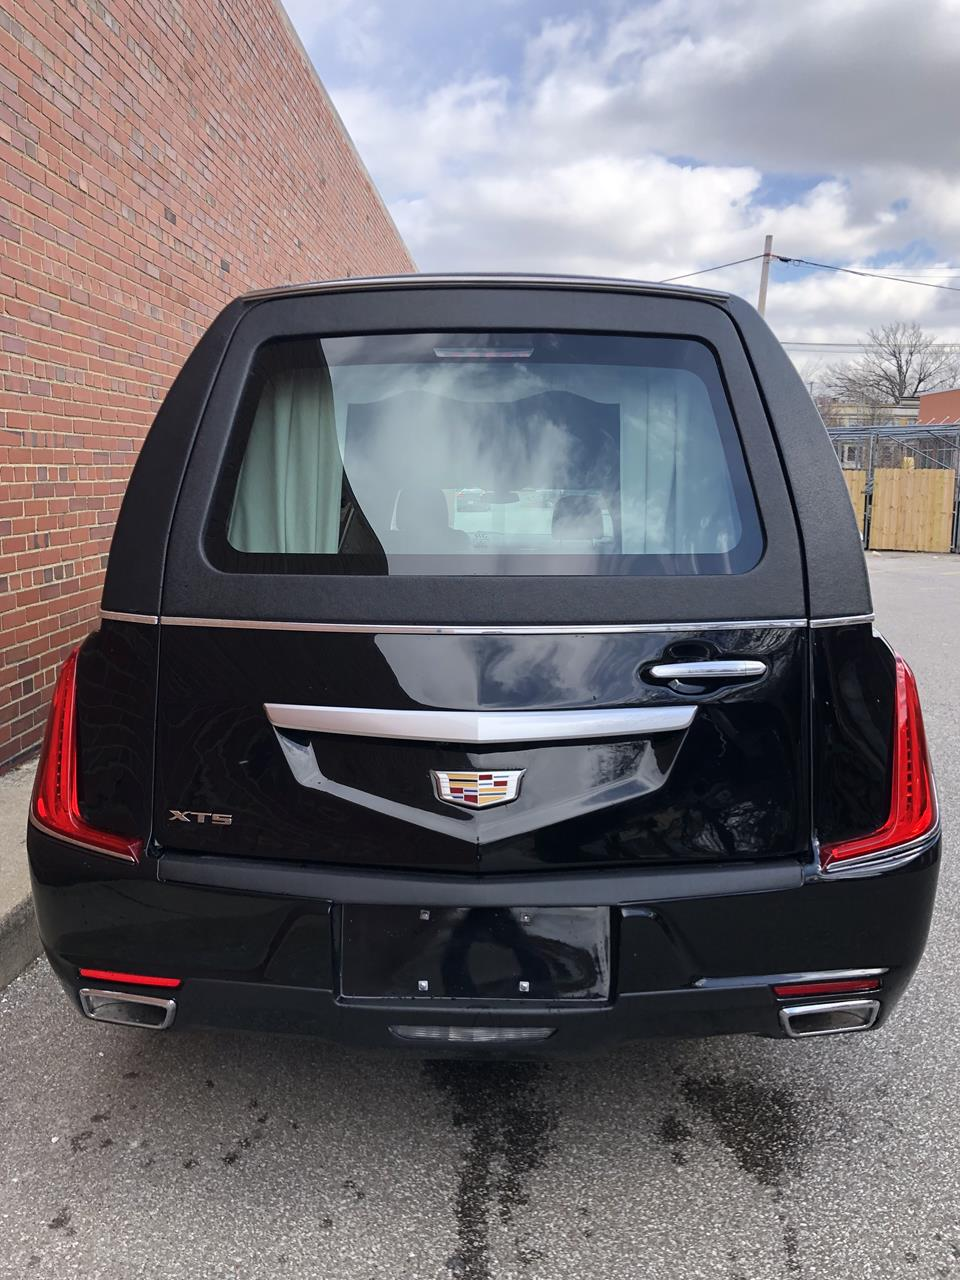 2019 Cadillac Eagle Kingsley Hearse 19 6